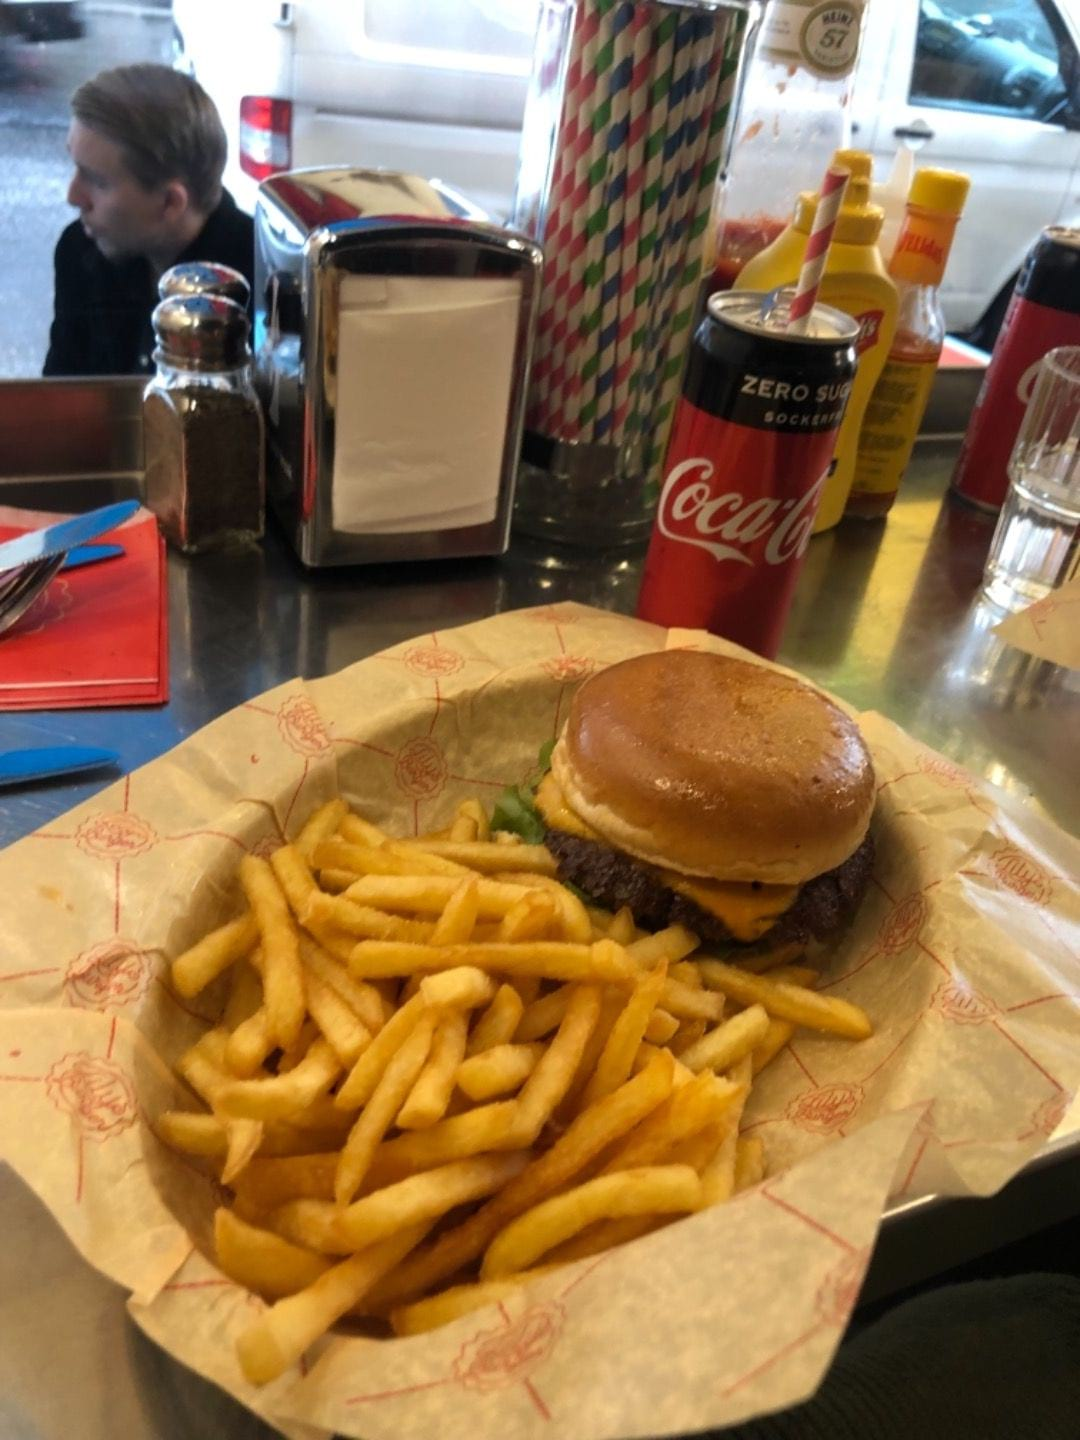 Photo from Lily's Burger Nytorget by Elin E.